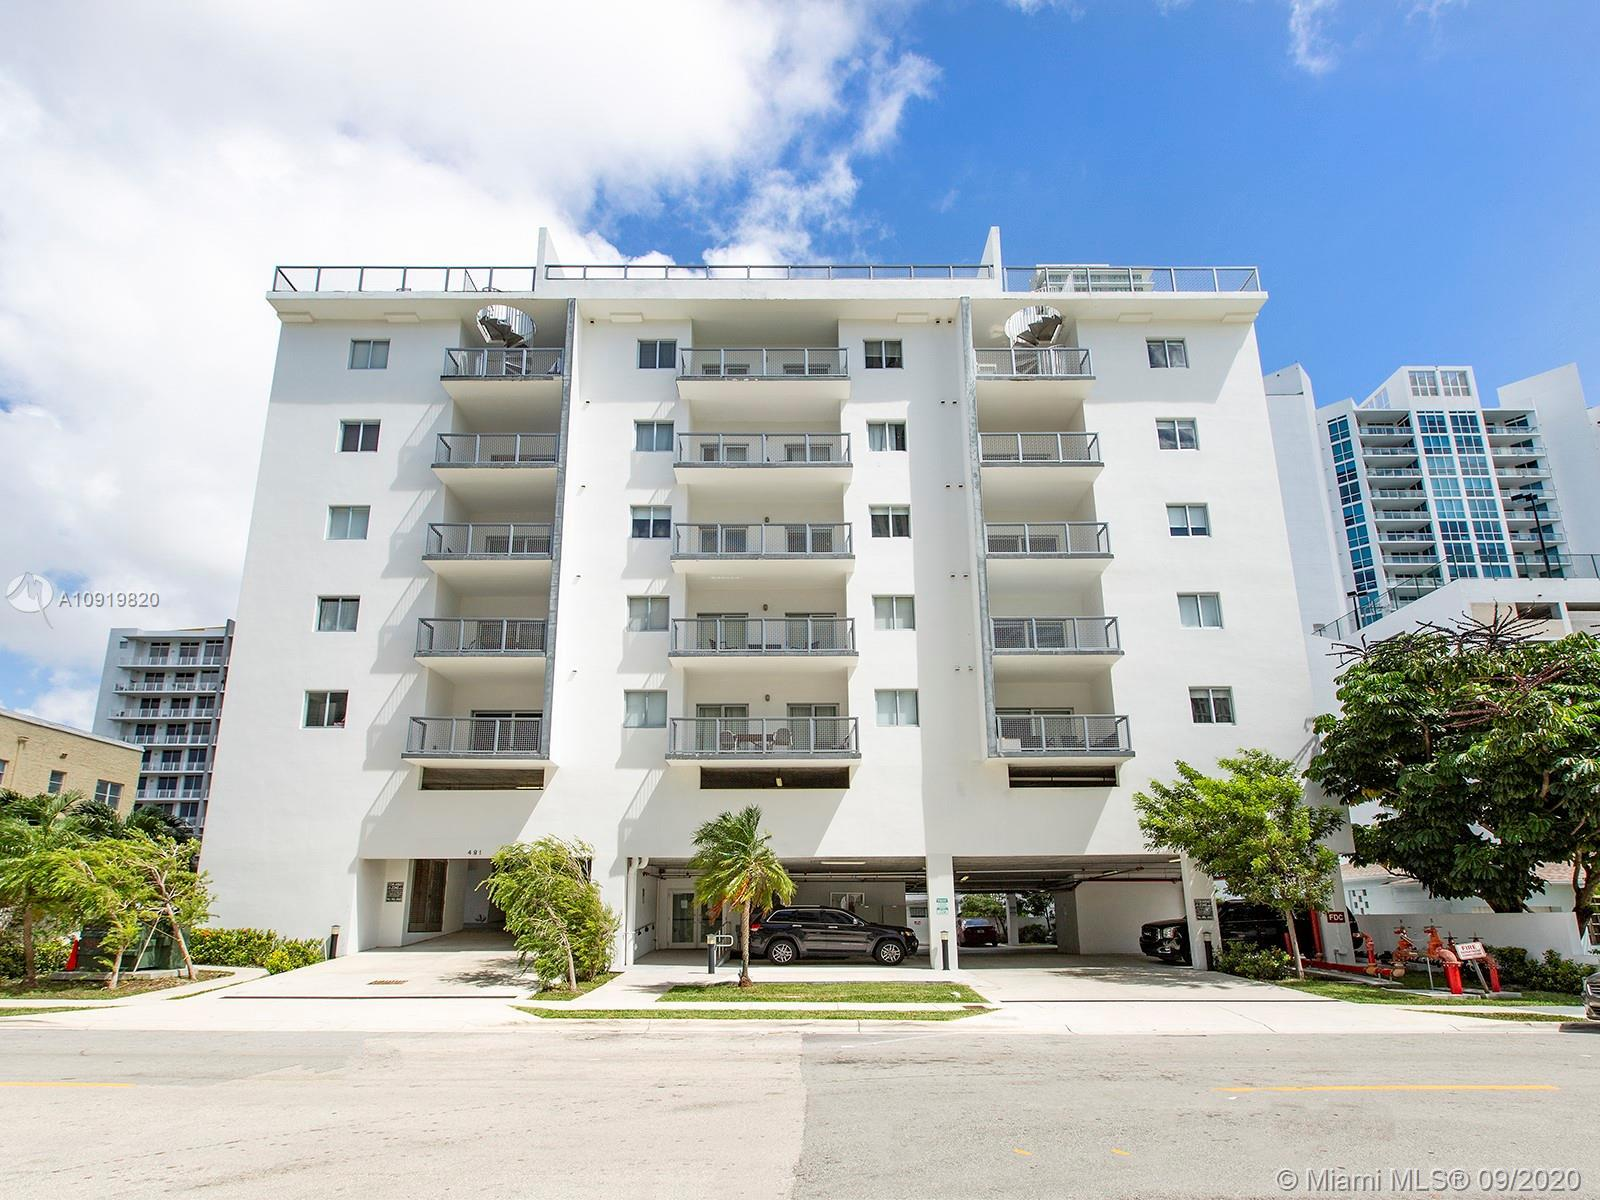 Investments opportunity! Fully furnished turnkey apartment! Amazing return on investment for this be